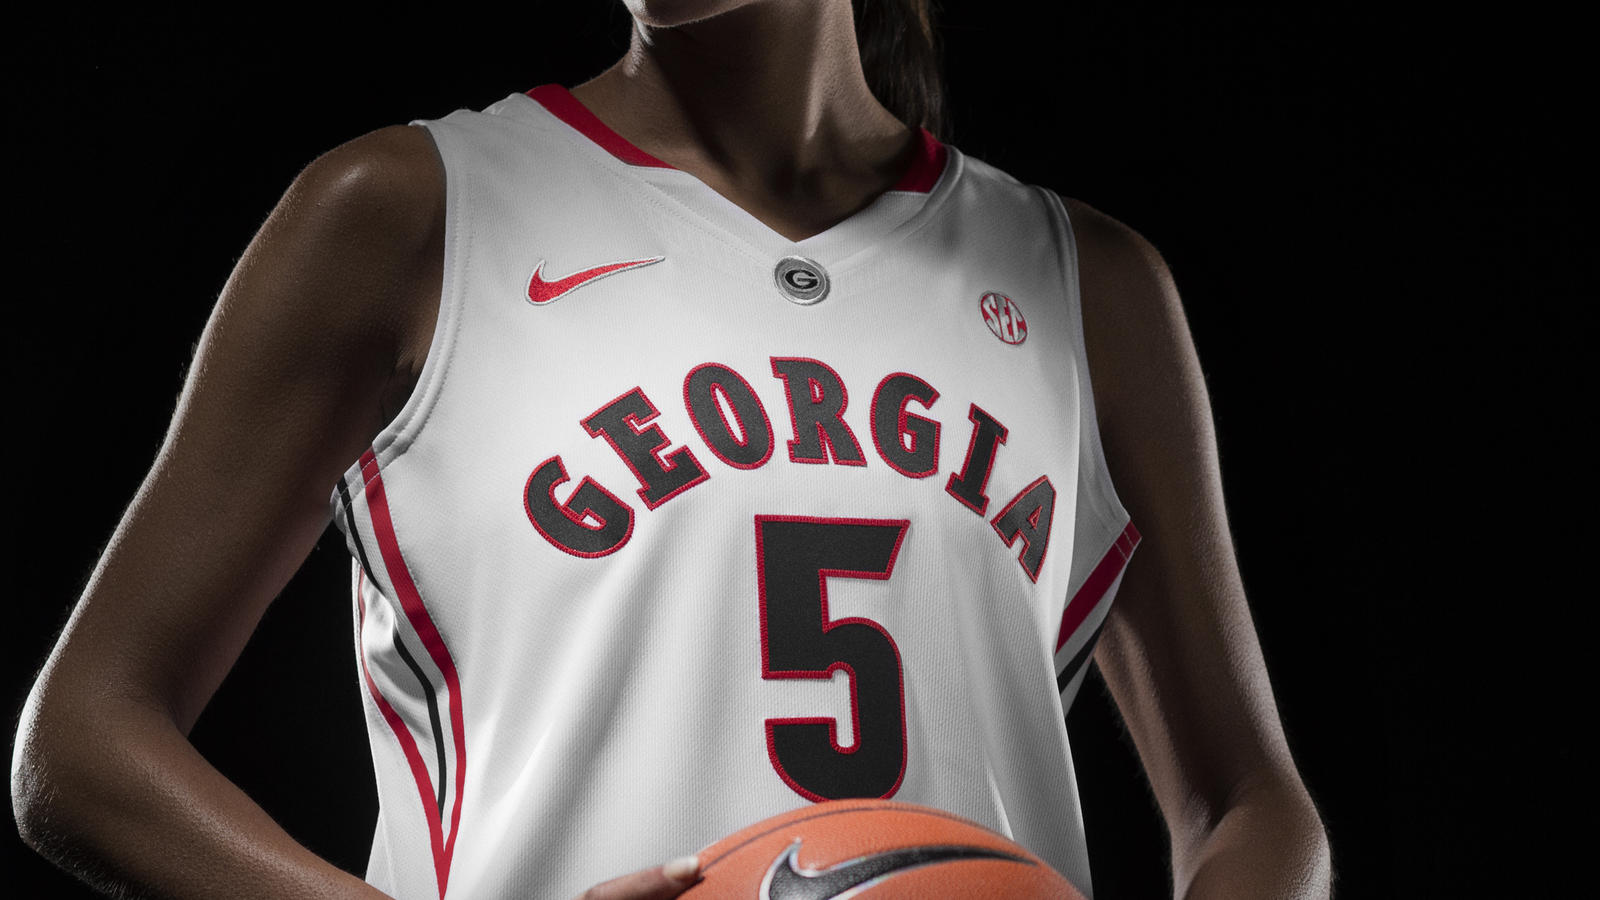 Georgia Women's Basketball